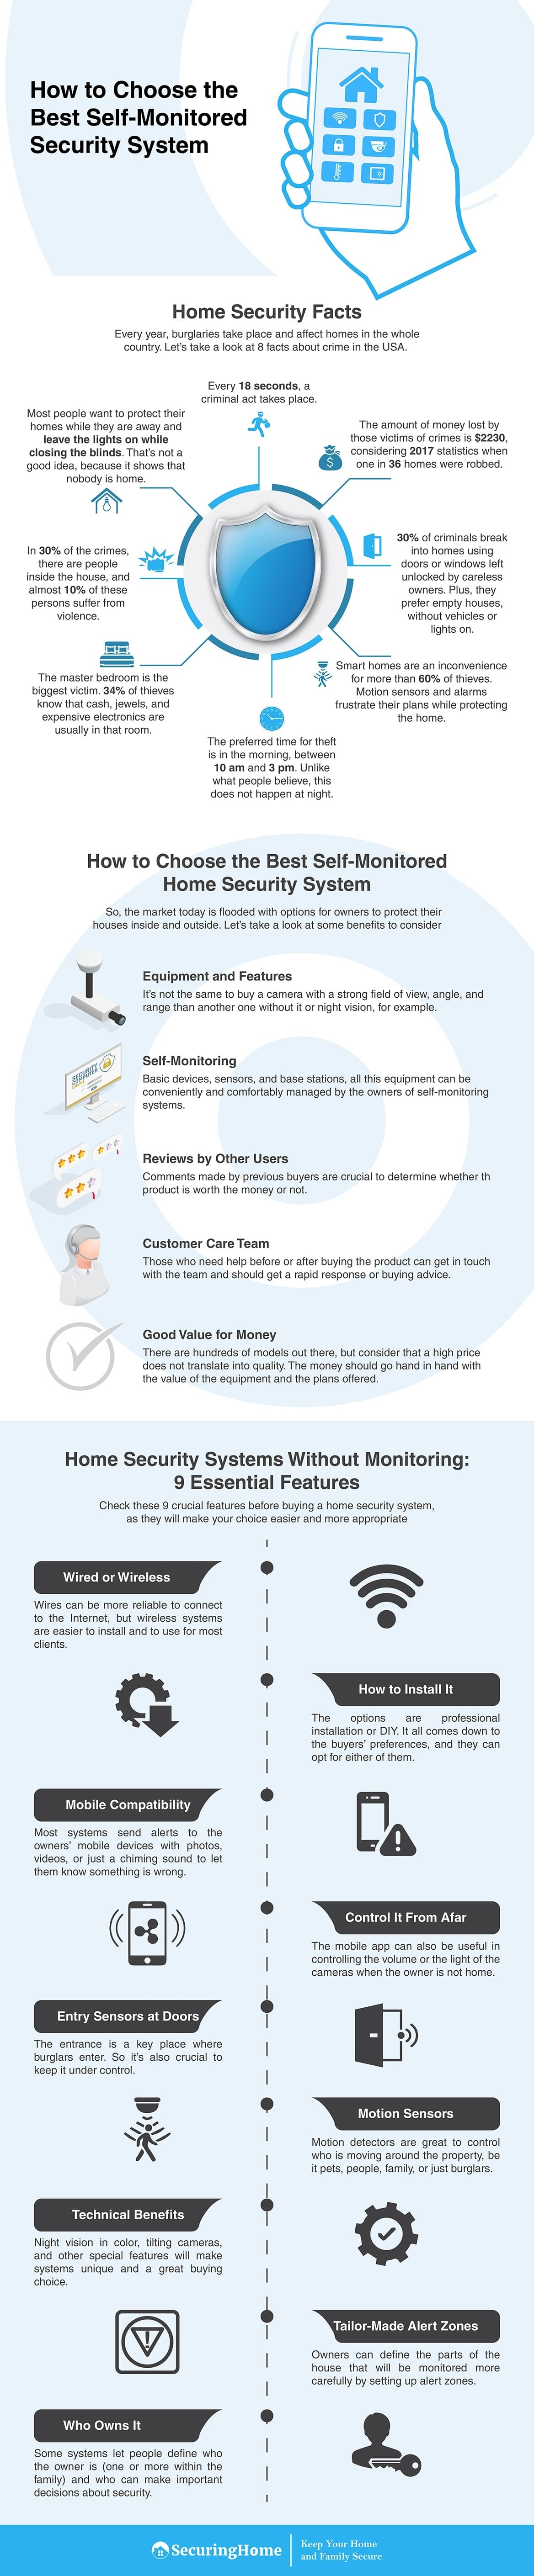 Best Self-Supervised Home Security Systems 2020 #infographic